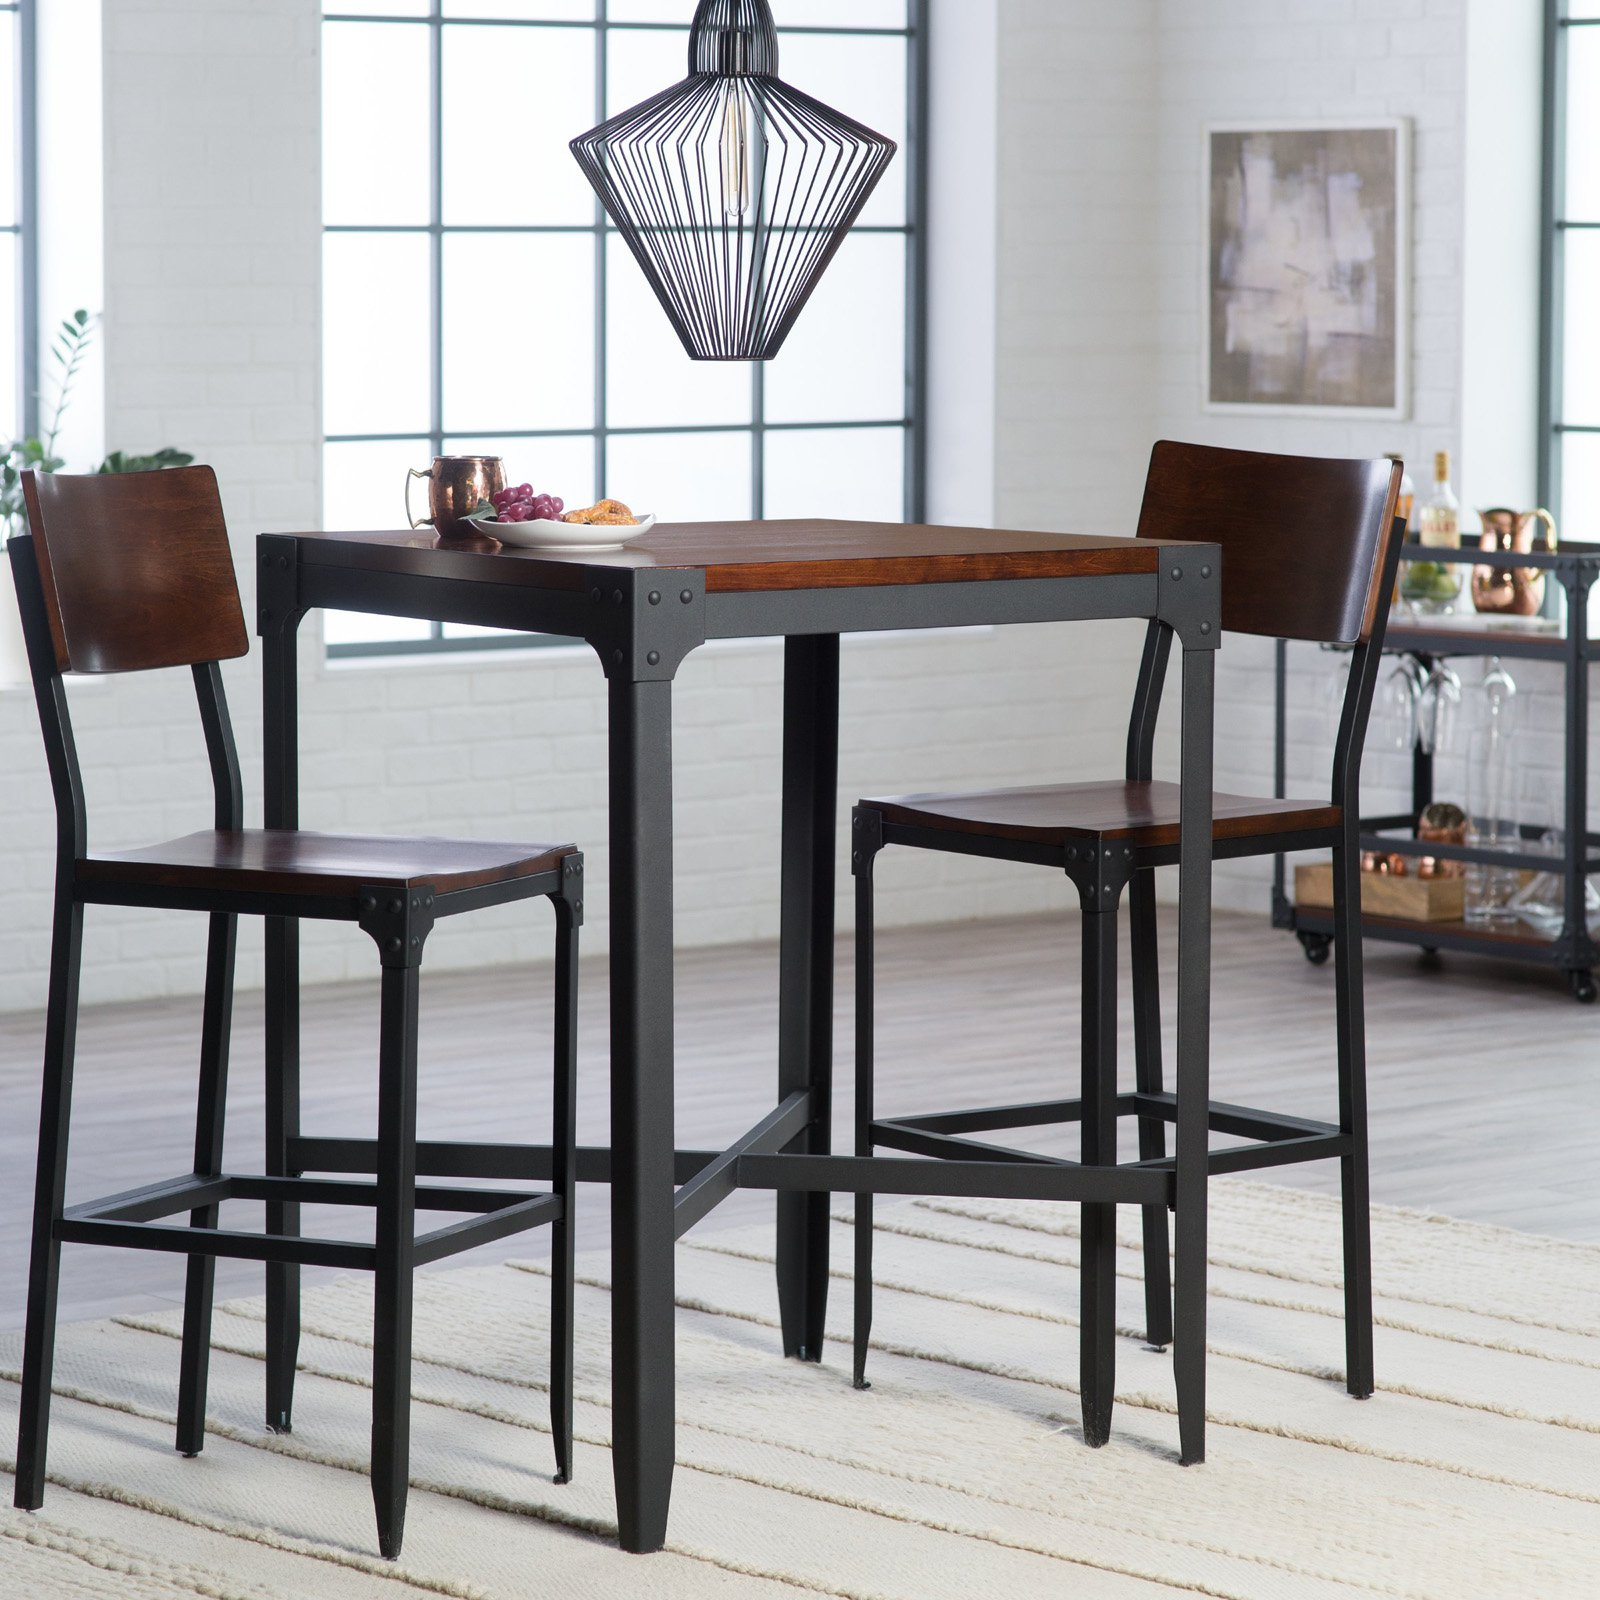 Belham Living Trenton 3 Piece Pub Table Set Walmart